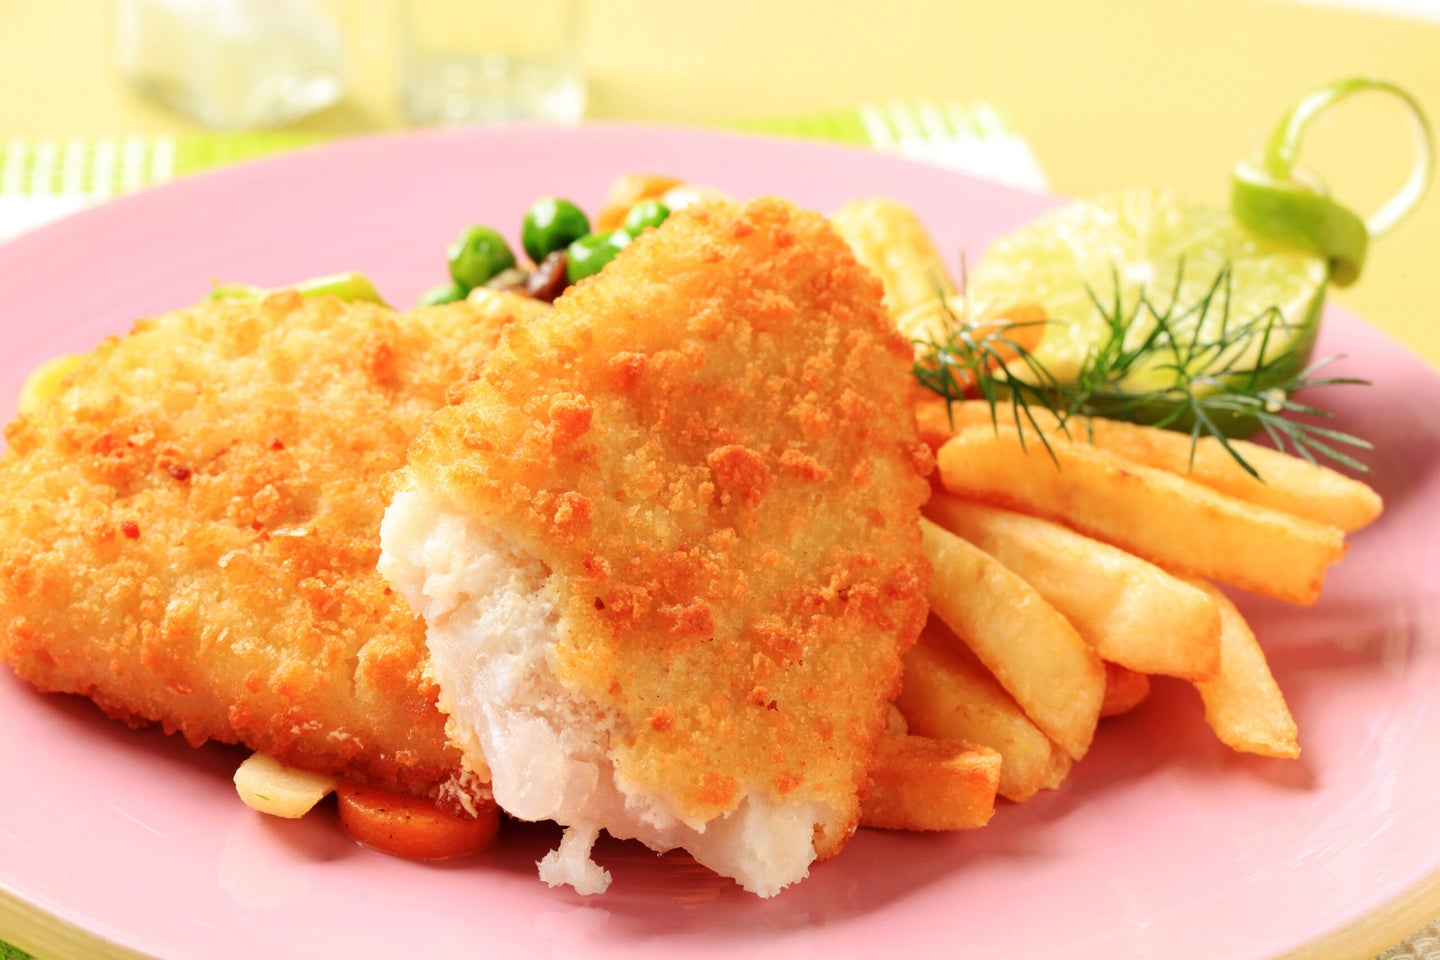 a plate of fried fish and french fries